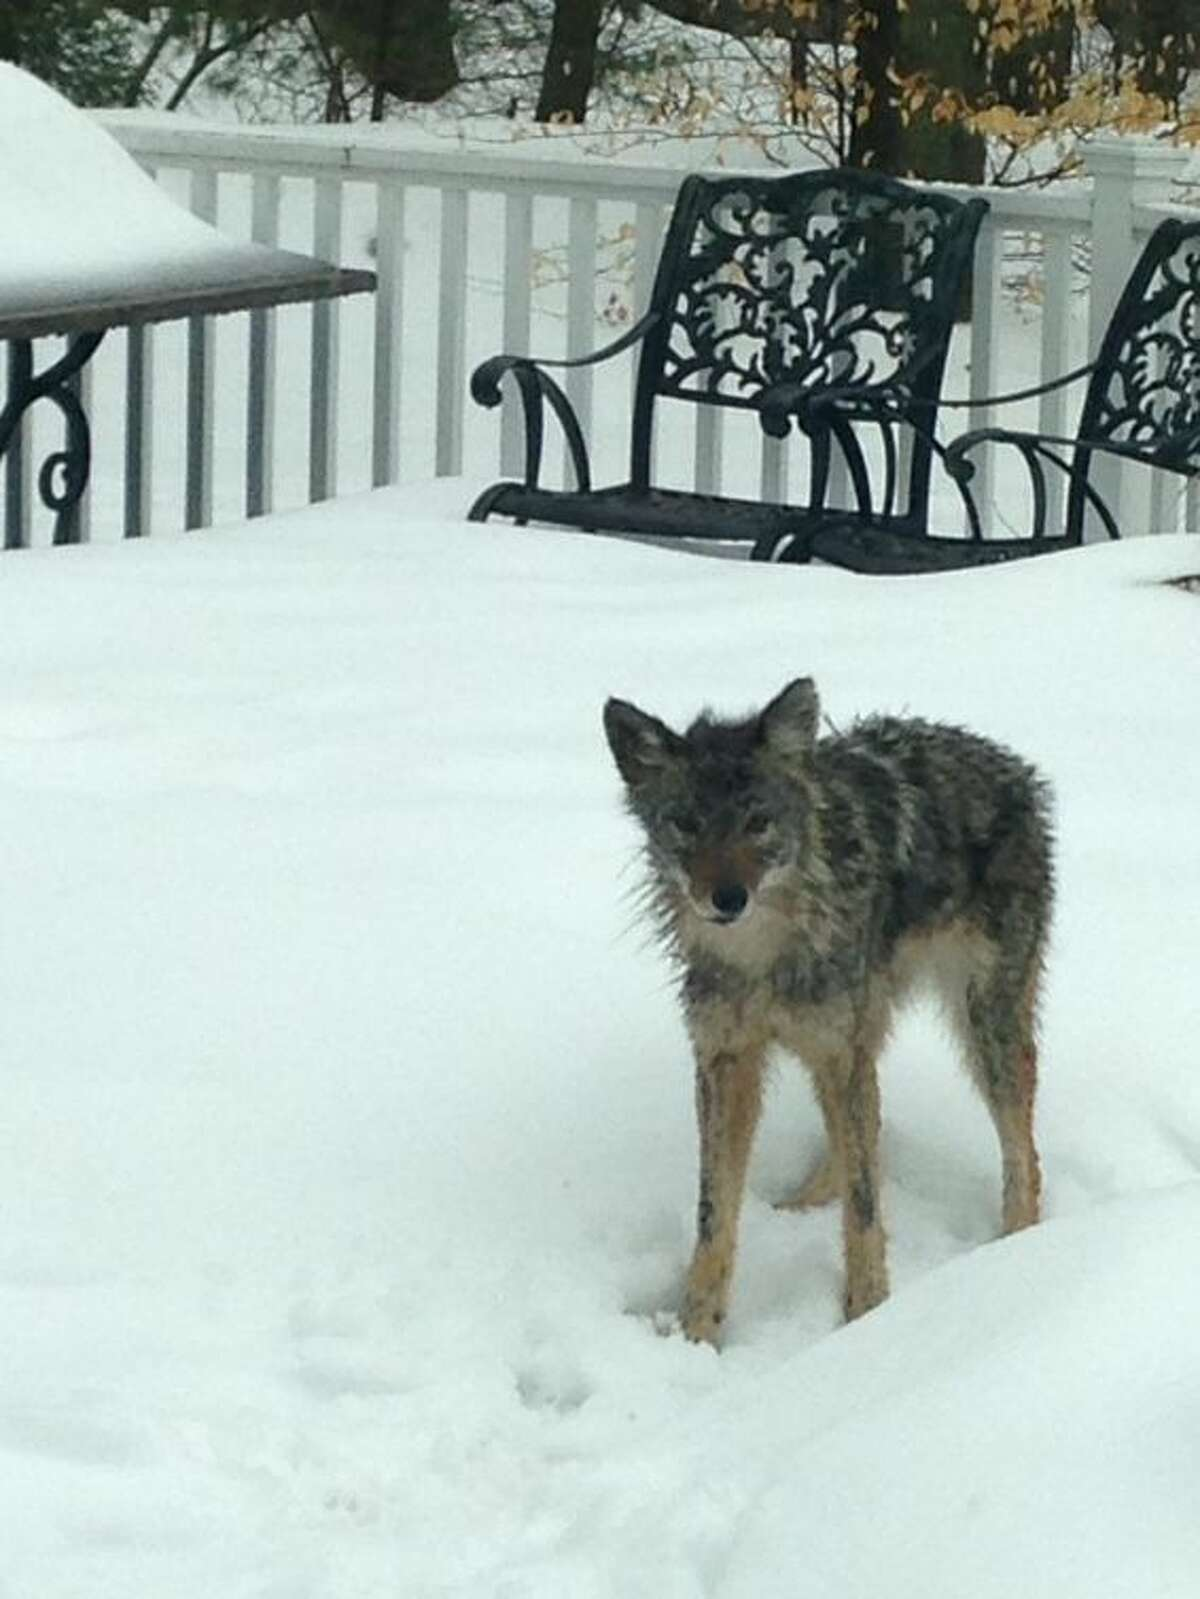 This photo provided by the Stamford Police Department shows a wild coyote that has been roaming the woods of North Stamford and attacking domestic animals.